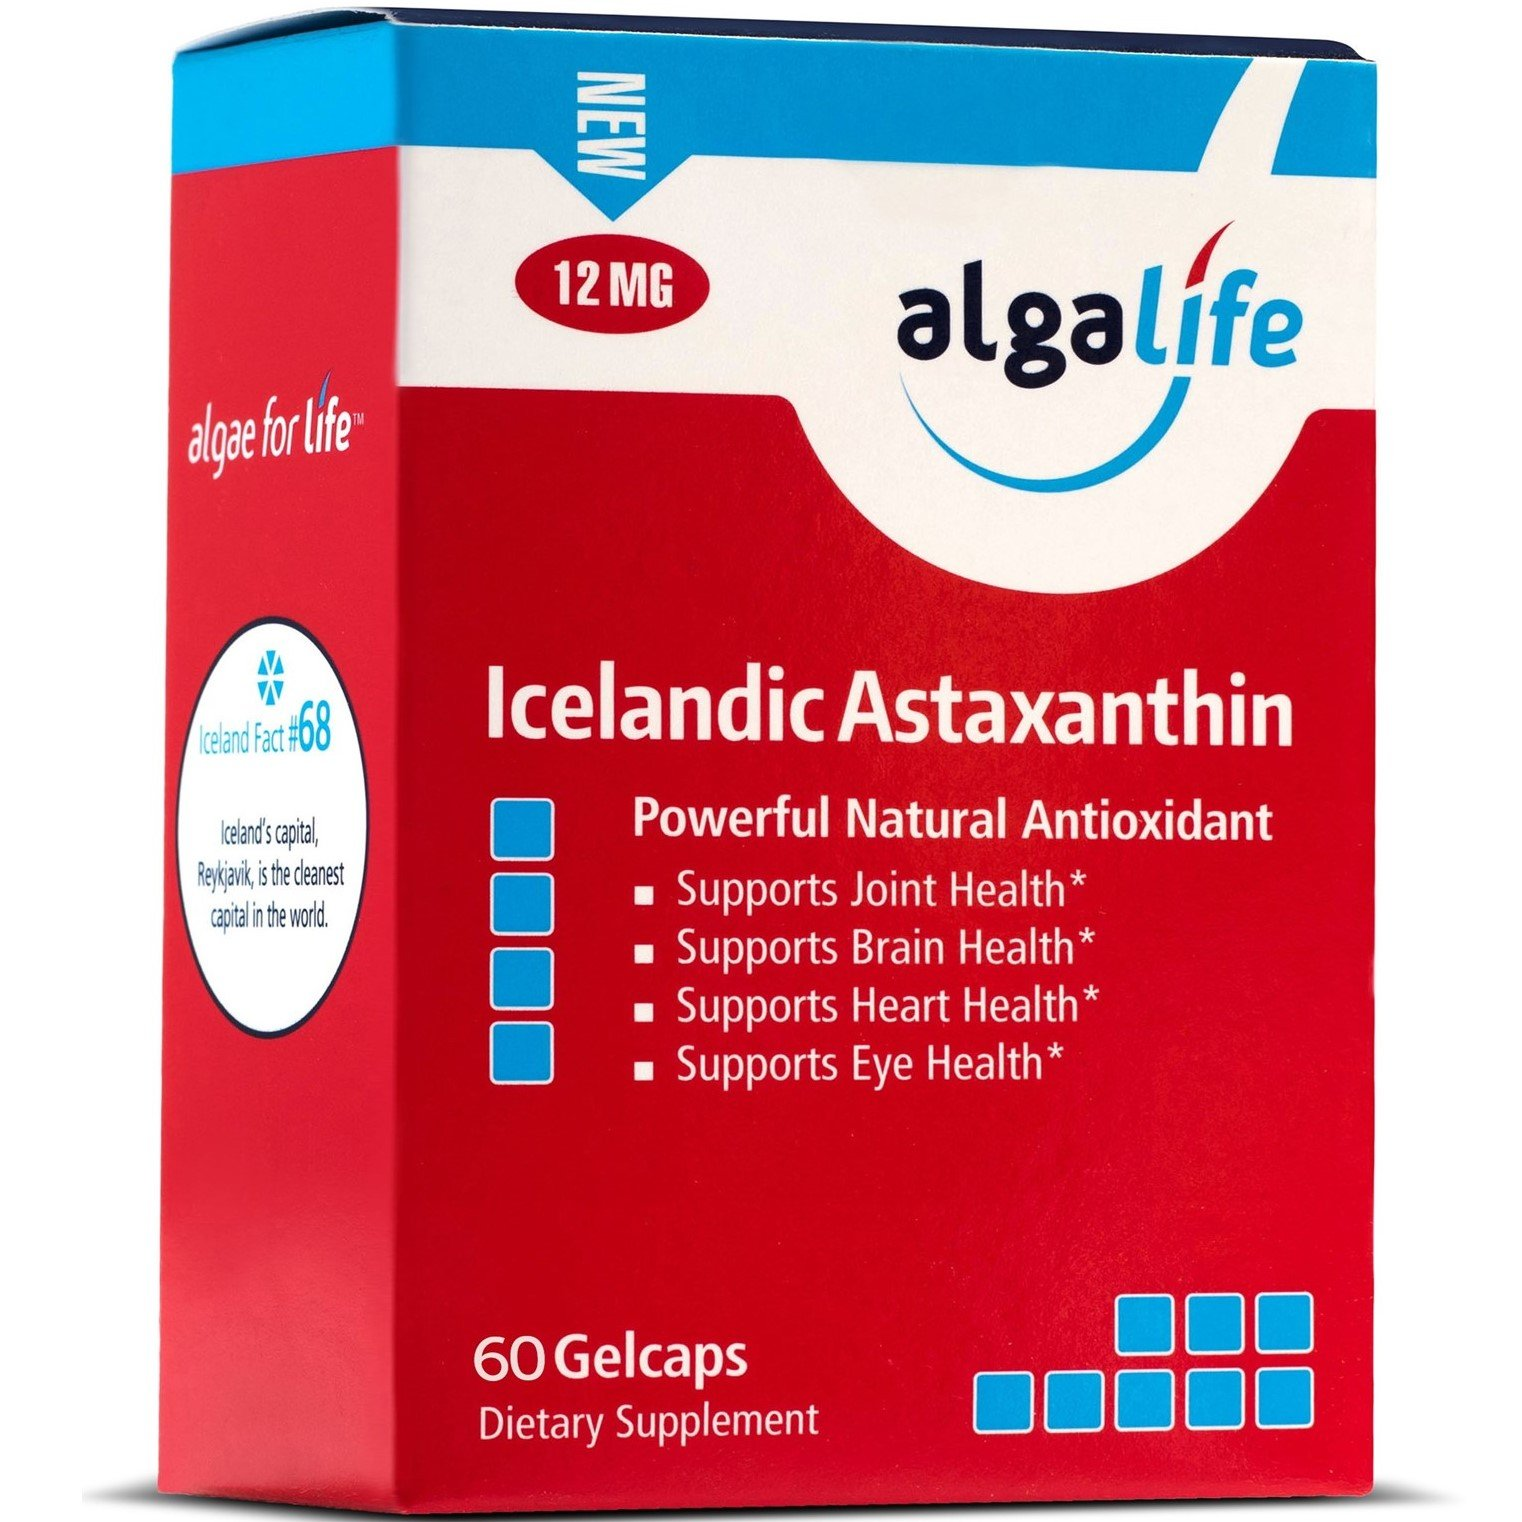 Icelandic Astaxanthin 60 Count – 12mg with Hi-Oleic Sunflower Oil - 60 GelCaps, One Per Day Formula - 60 Day Supply - 12 mg of Pure Natural Astaxanthin